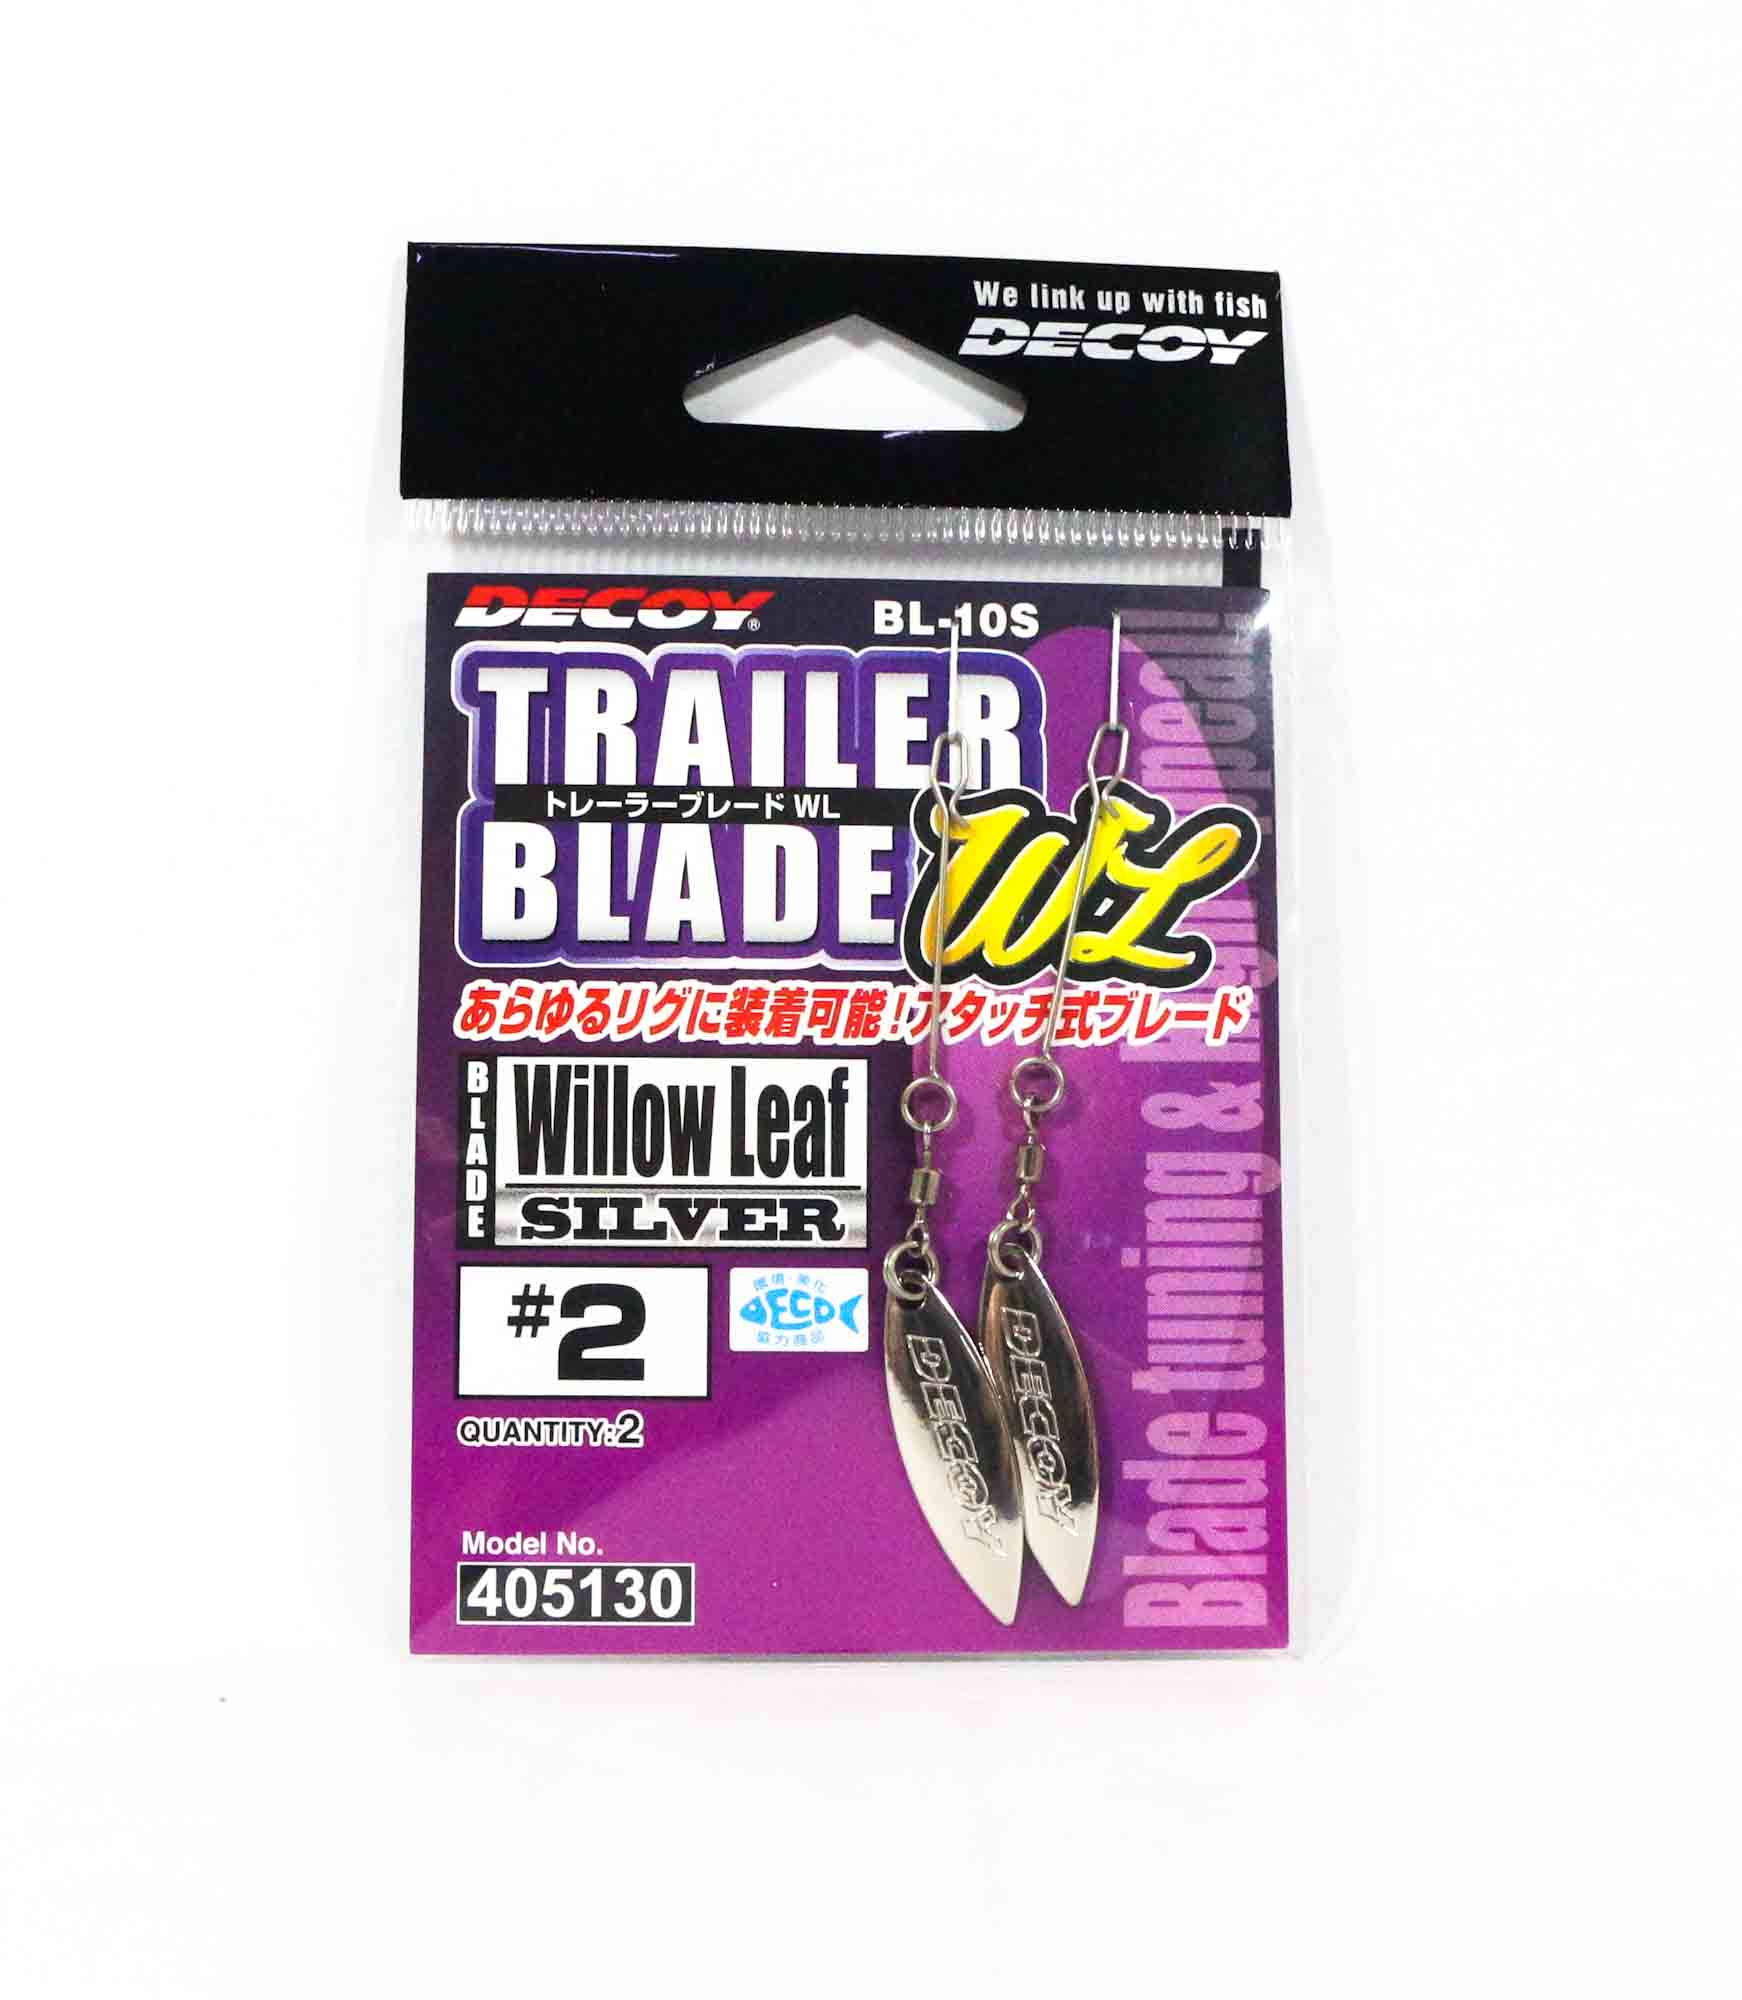 Decoy BL-10S Trailer Blade Willow Leaf Silver Size 2 (5130)